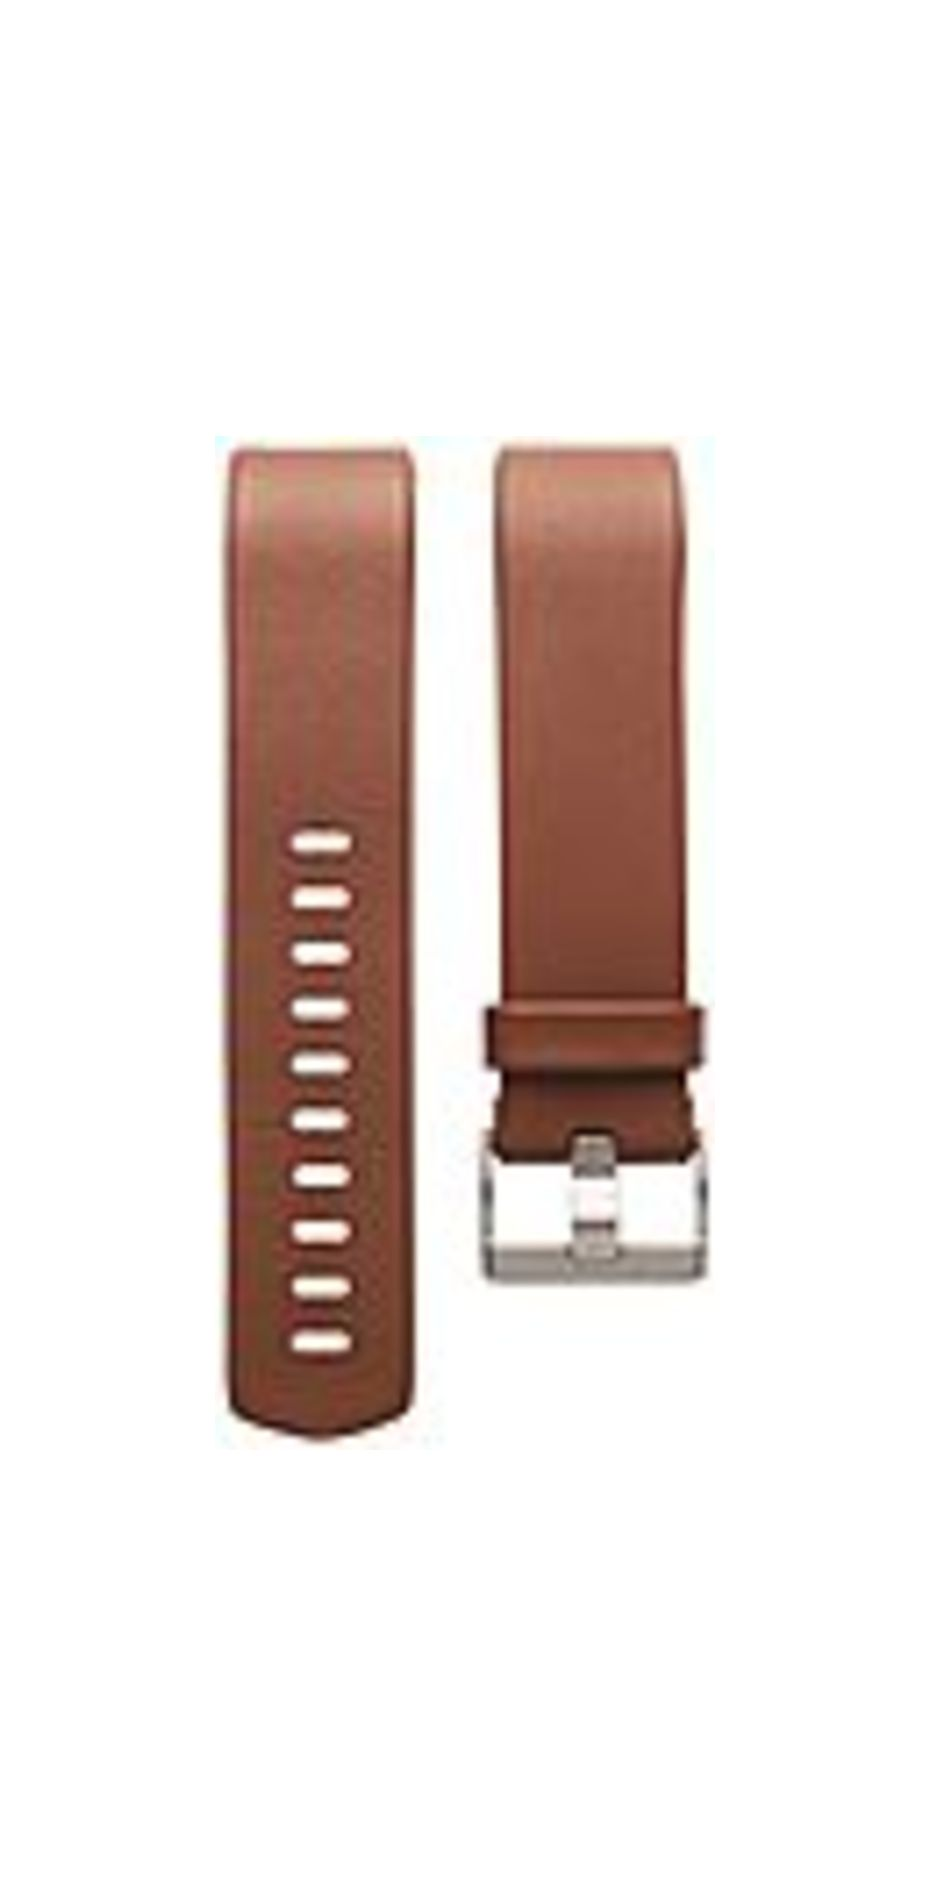 Fitbit Smartwatch Band - Cognac - Leather